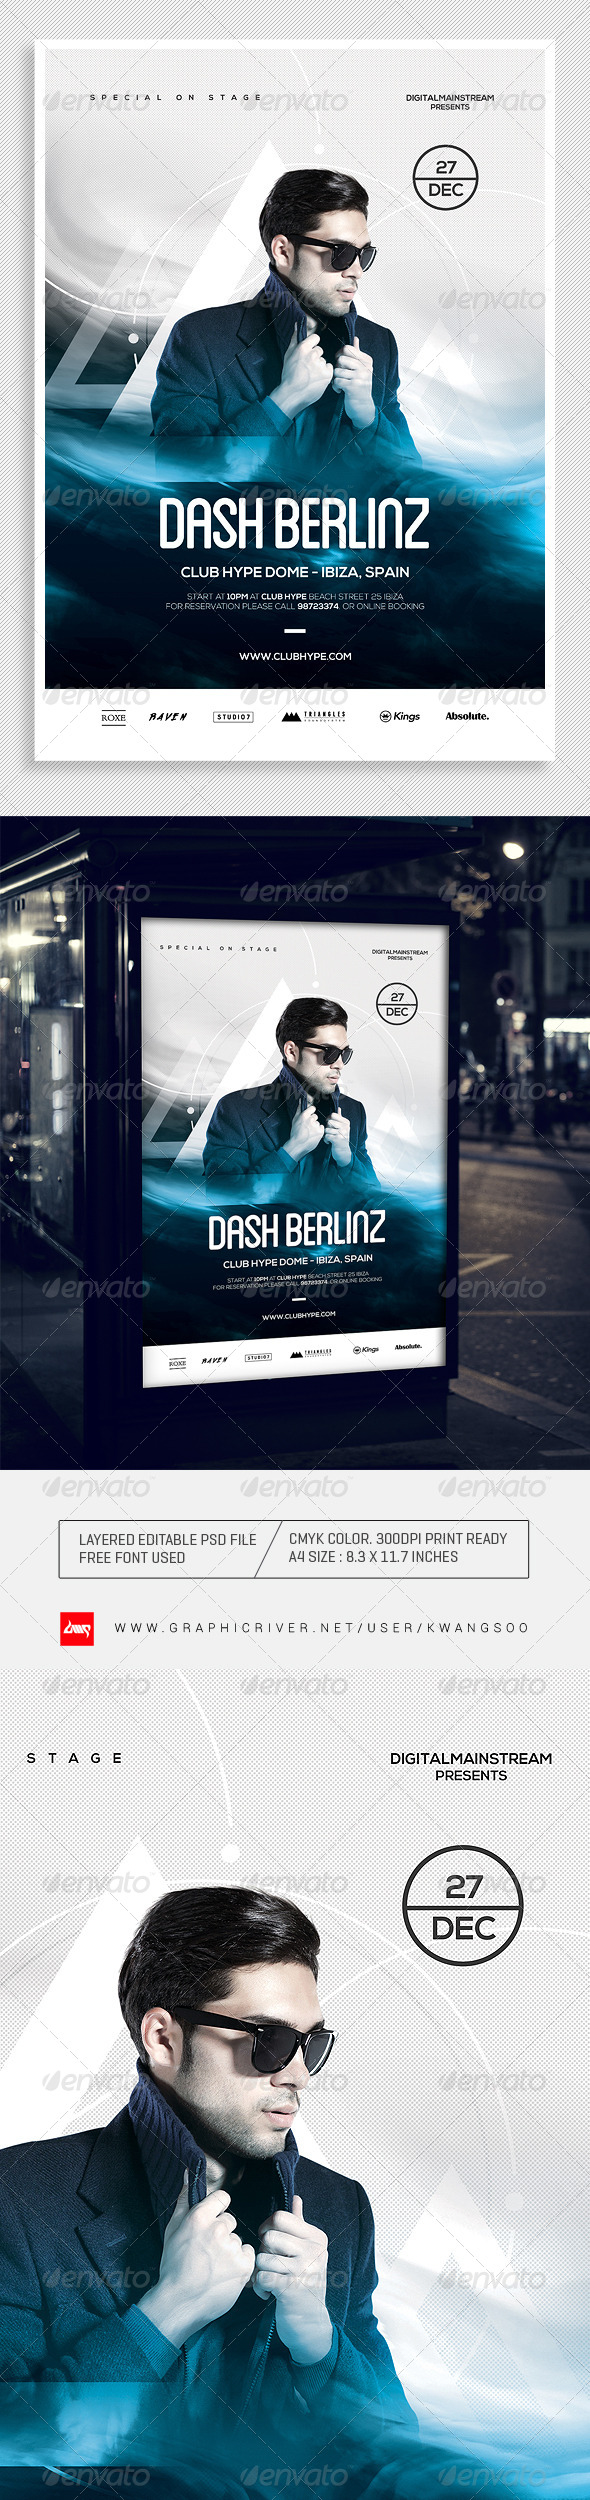 GraphicRiver Special Dj Electronic Dance Music Flyer Poster 2 8343845